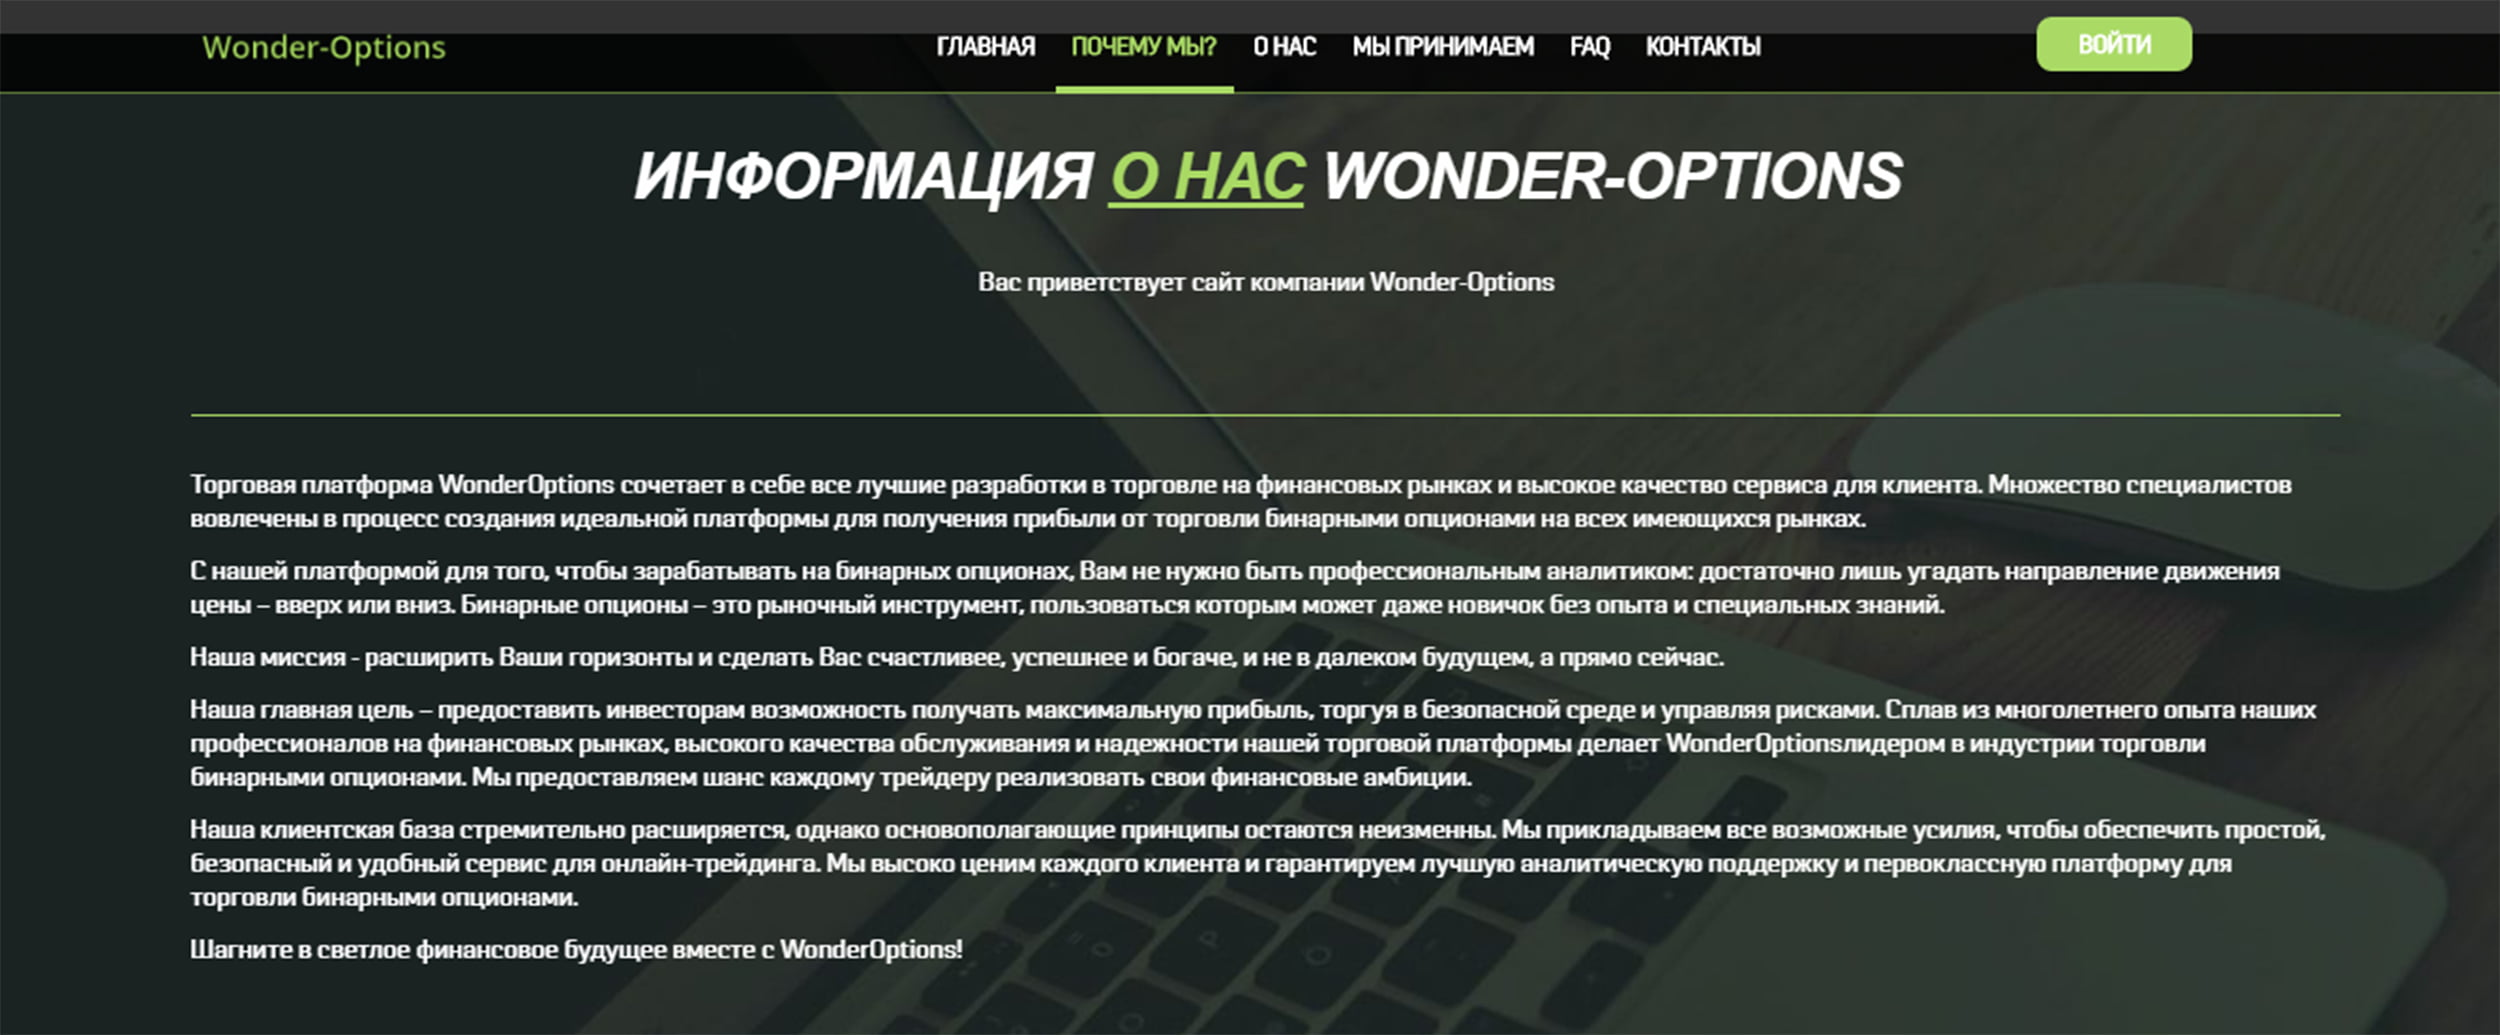 Информация о проекте Wonder Options